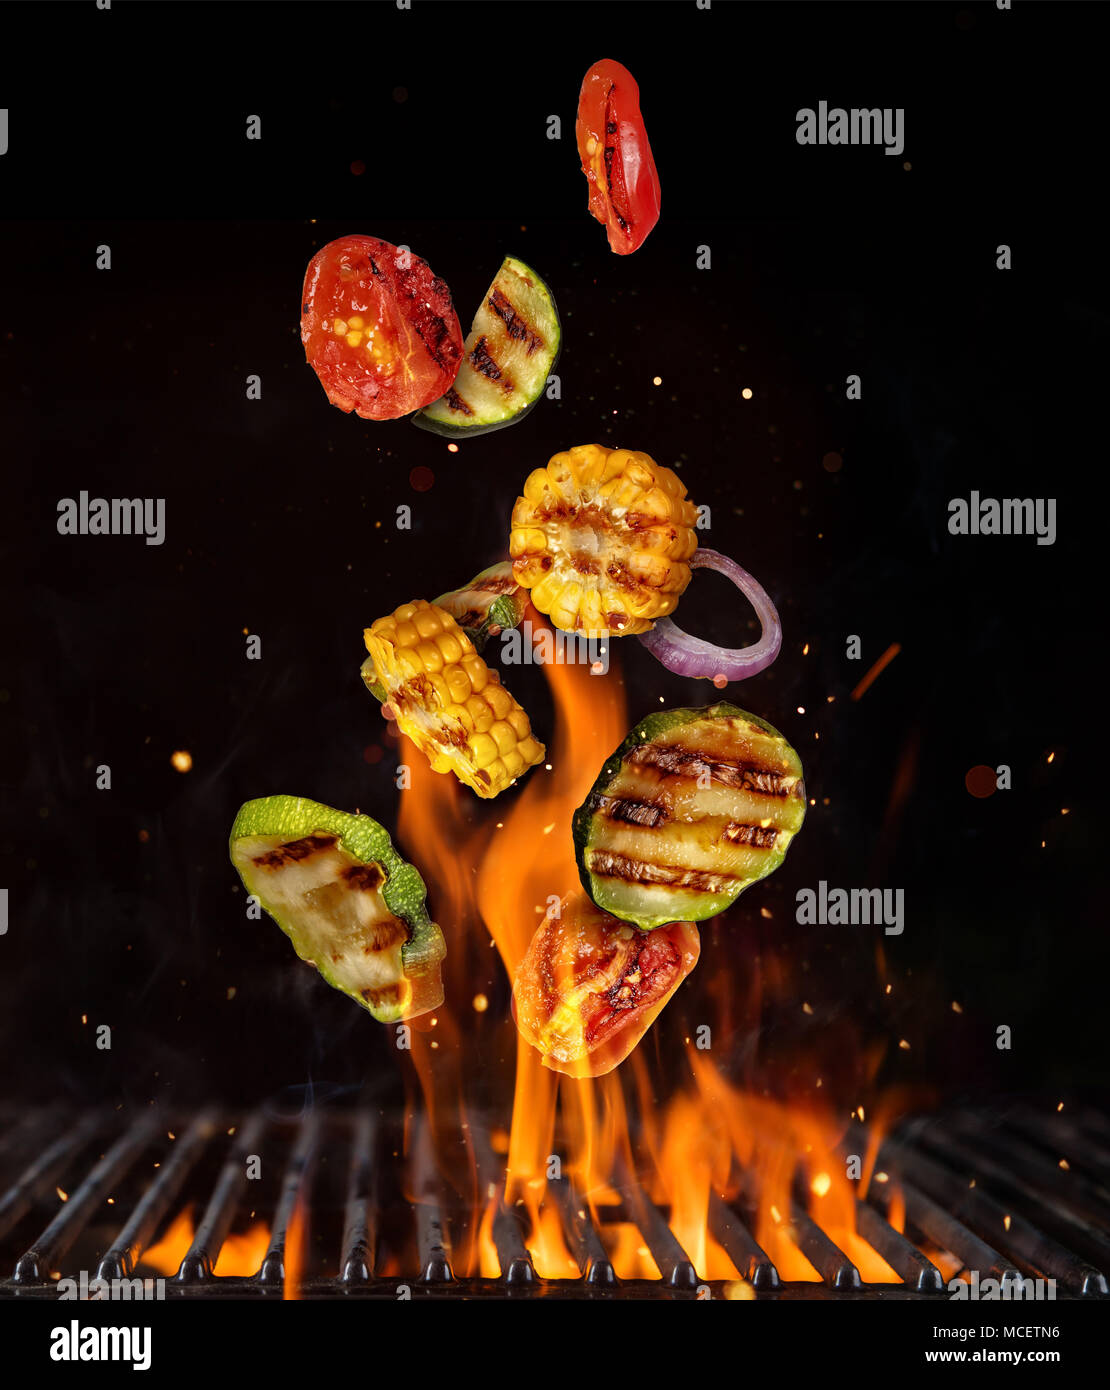 Flying Pieces Of Vegetable From Grill Grid Isolated On Black